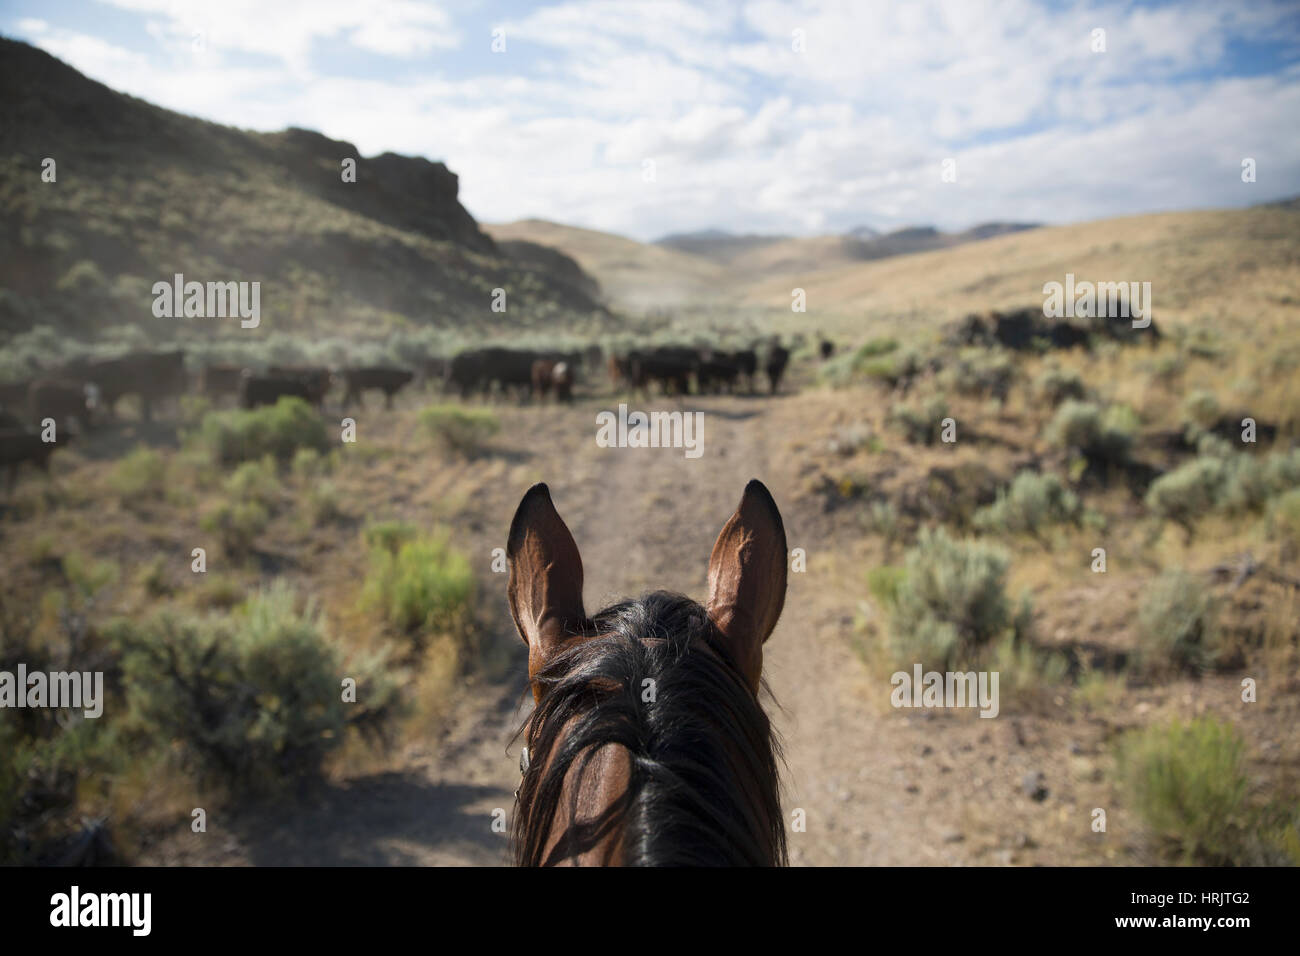 The perspective of a cowboy on horseback herding cattle in a dusty rural landscape. - Stock Image